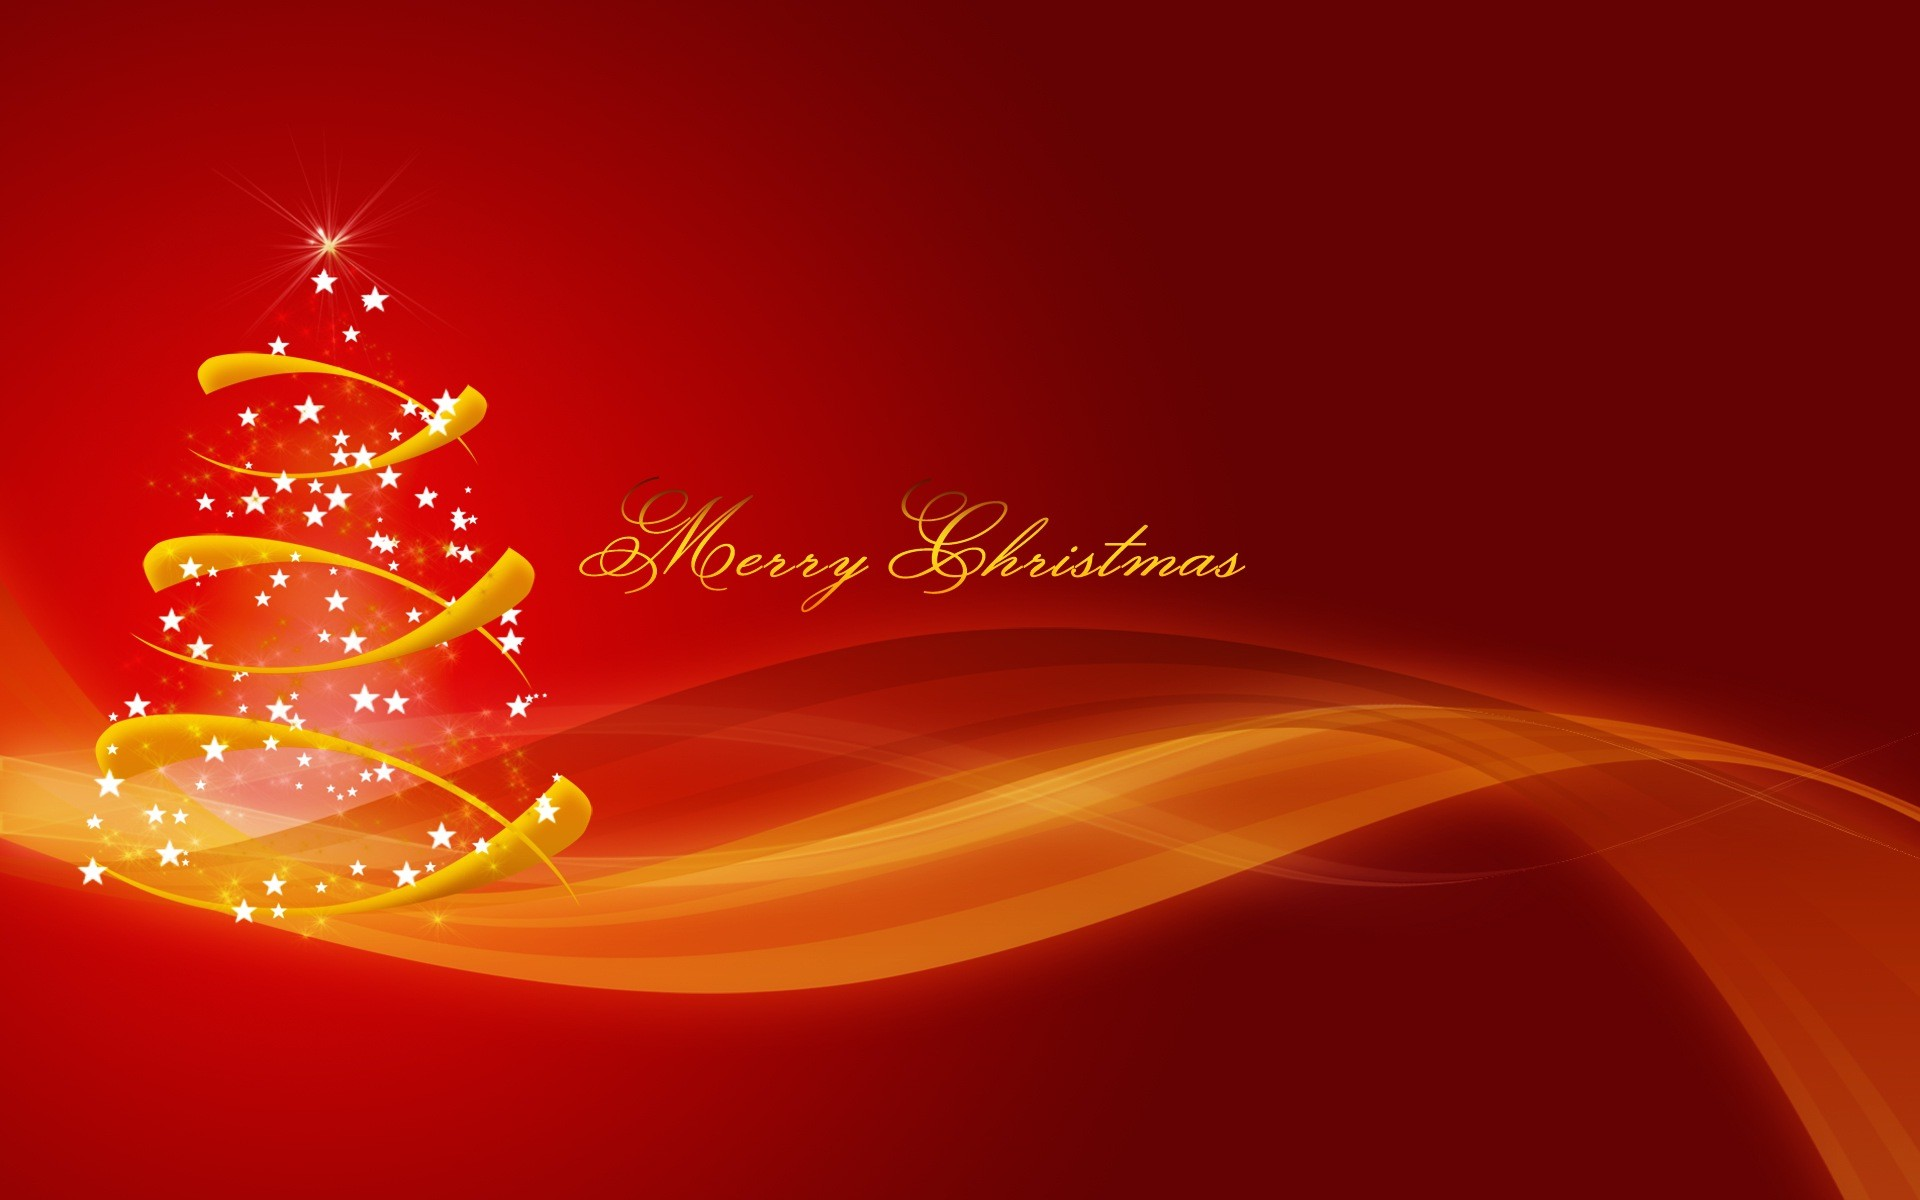 christmas-merry-background-holiday-download-free-backgrounds-wallpapers-